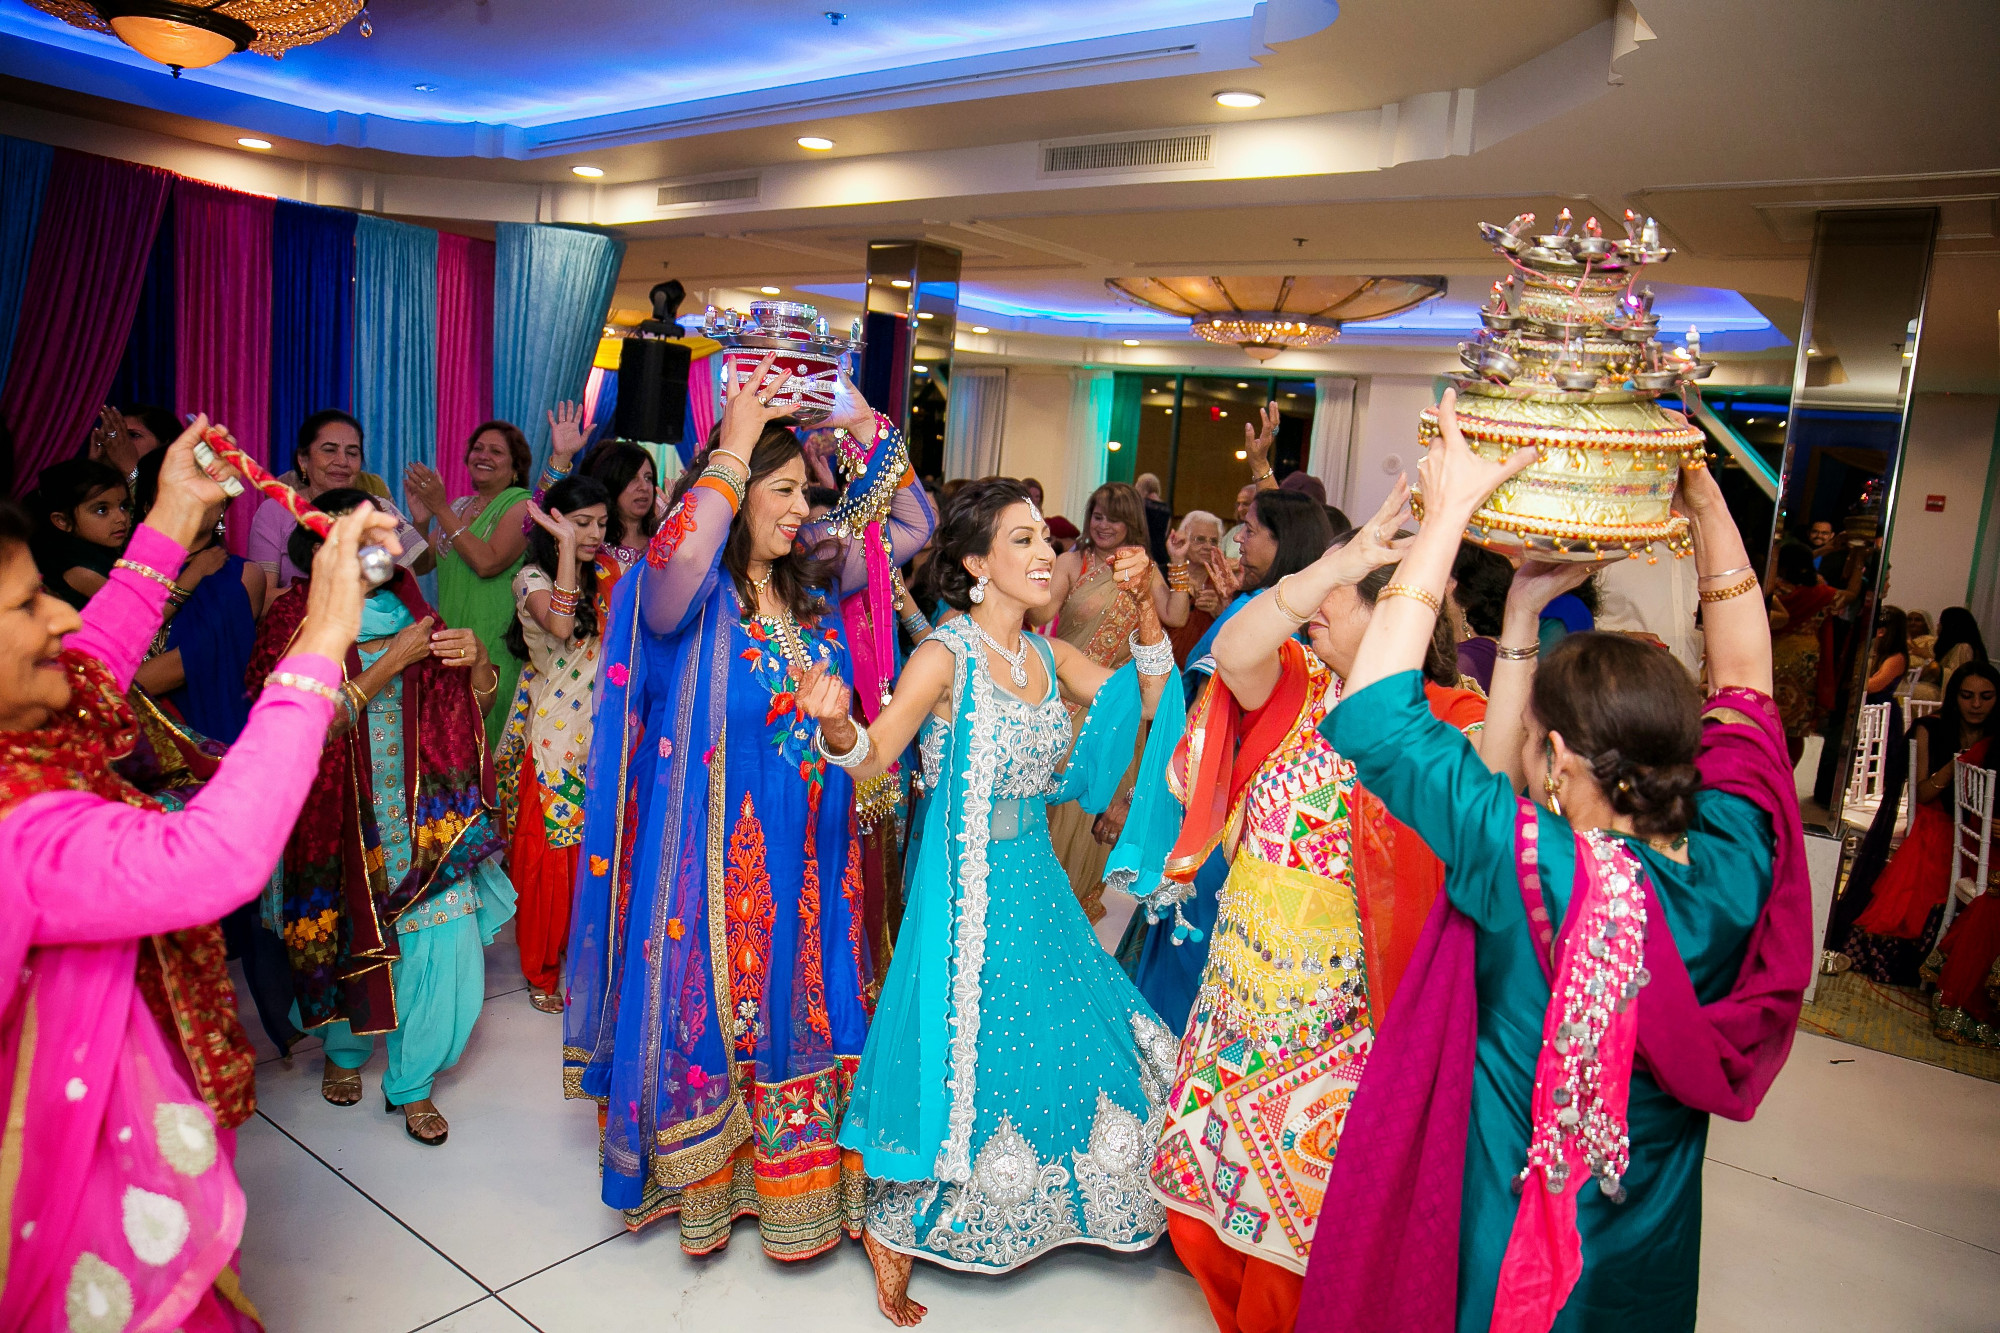 Best Indian Wedding Venues in Los Angeles - L A  Banquets